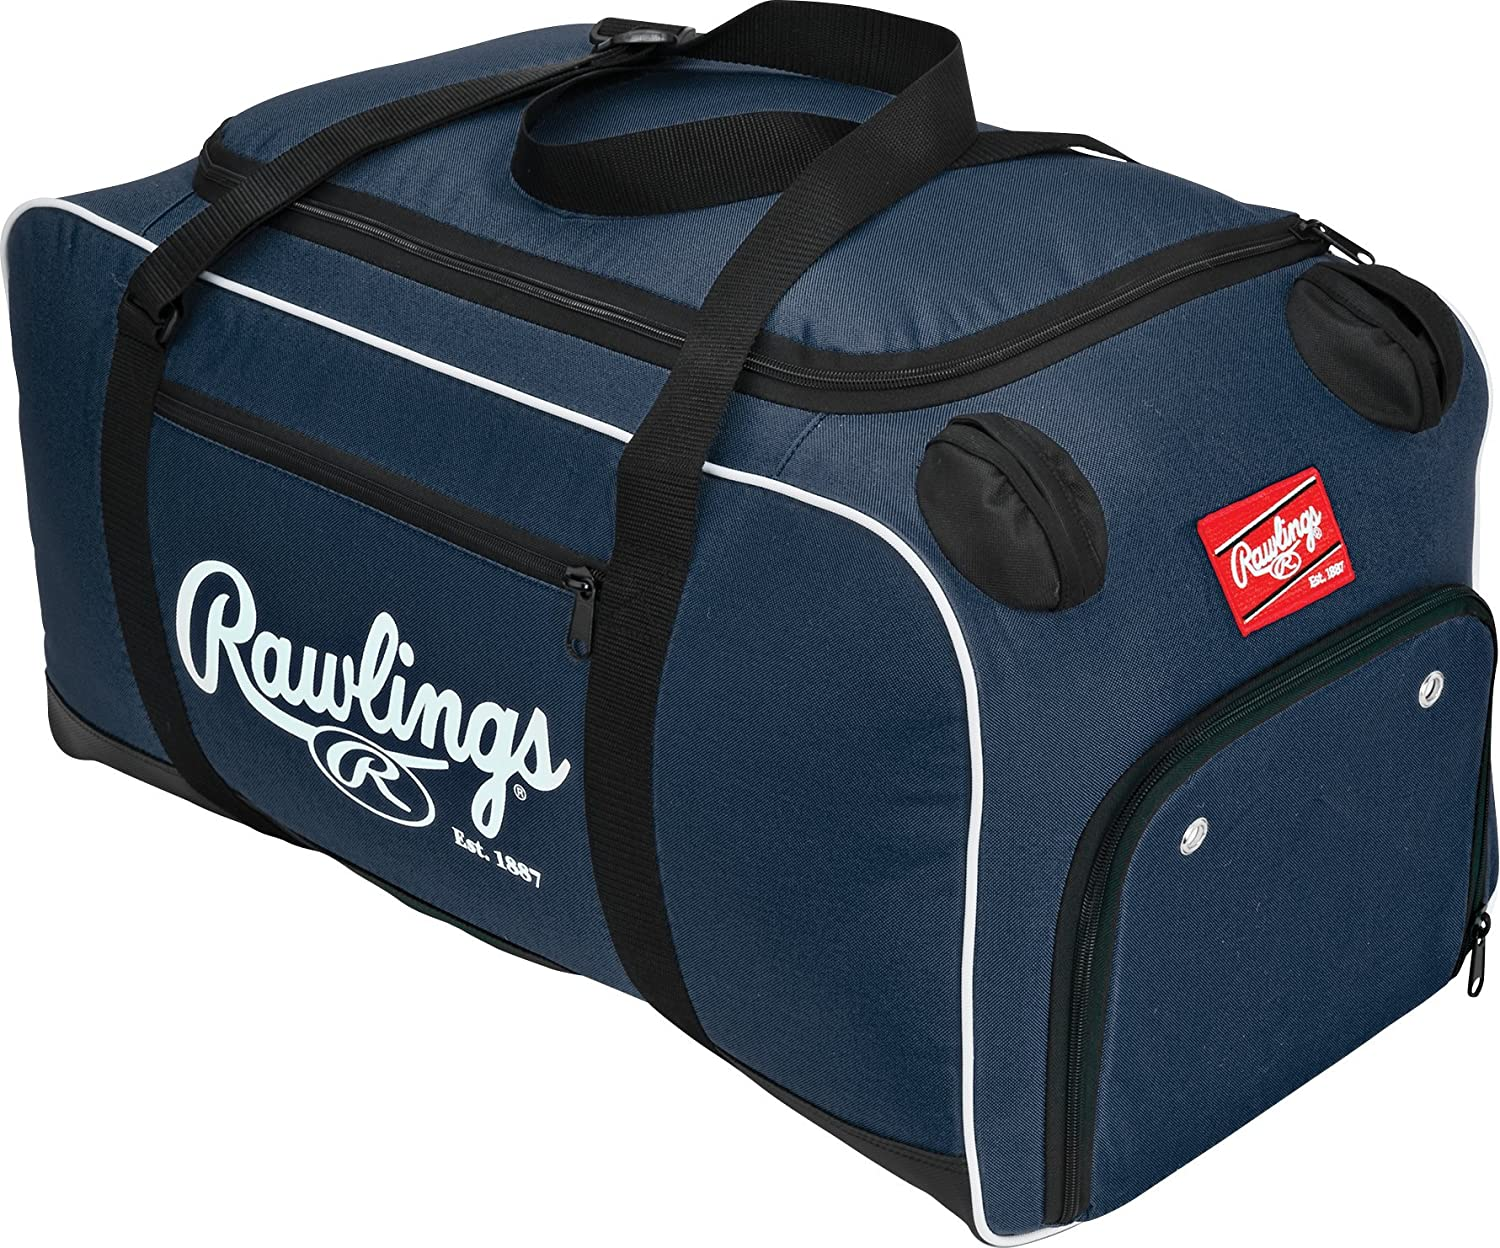 "Rawlings Covert Player Duffle Bag, Black, 26"" L x 13"" W x 13"" H: Sports & Outdoors"